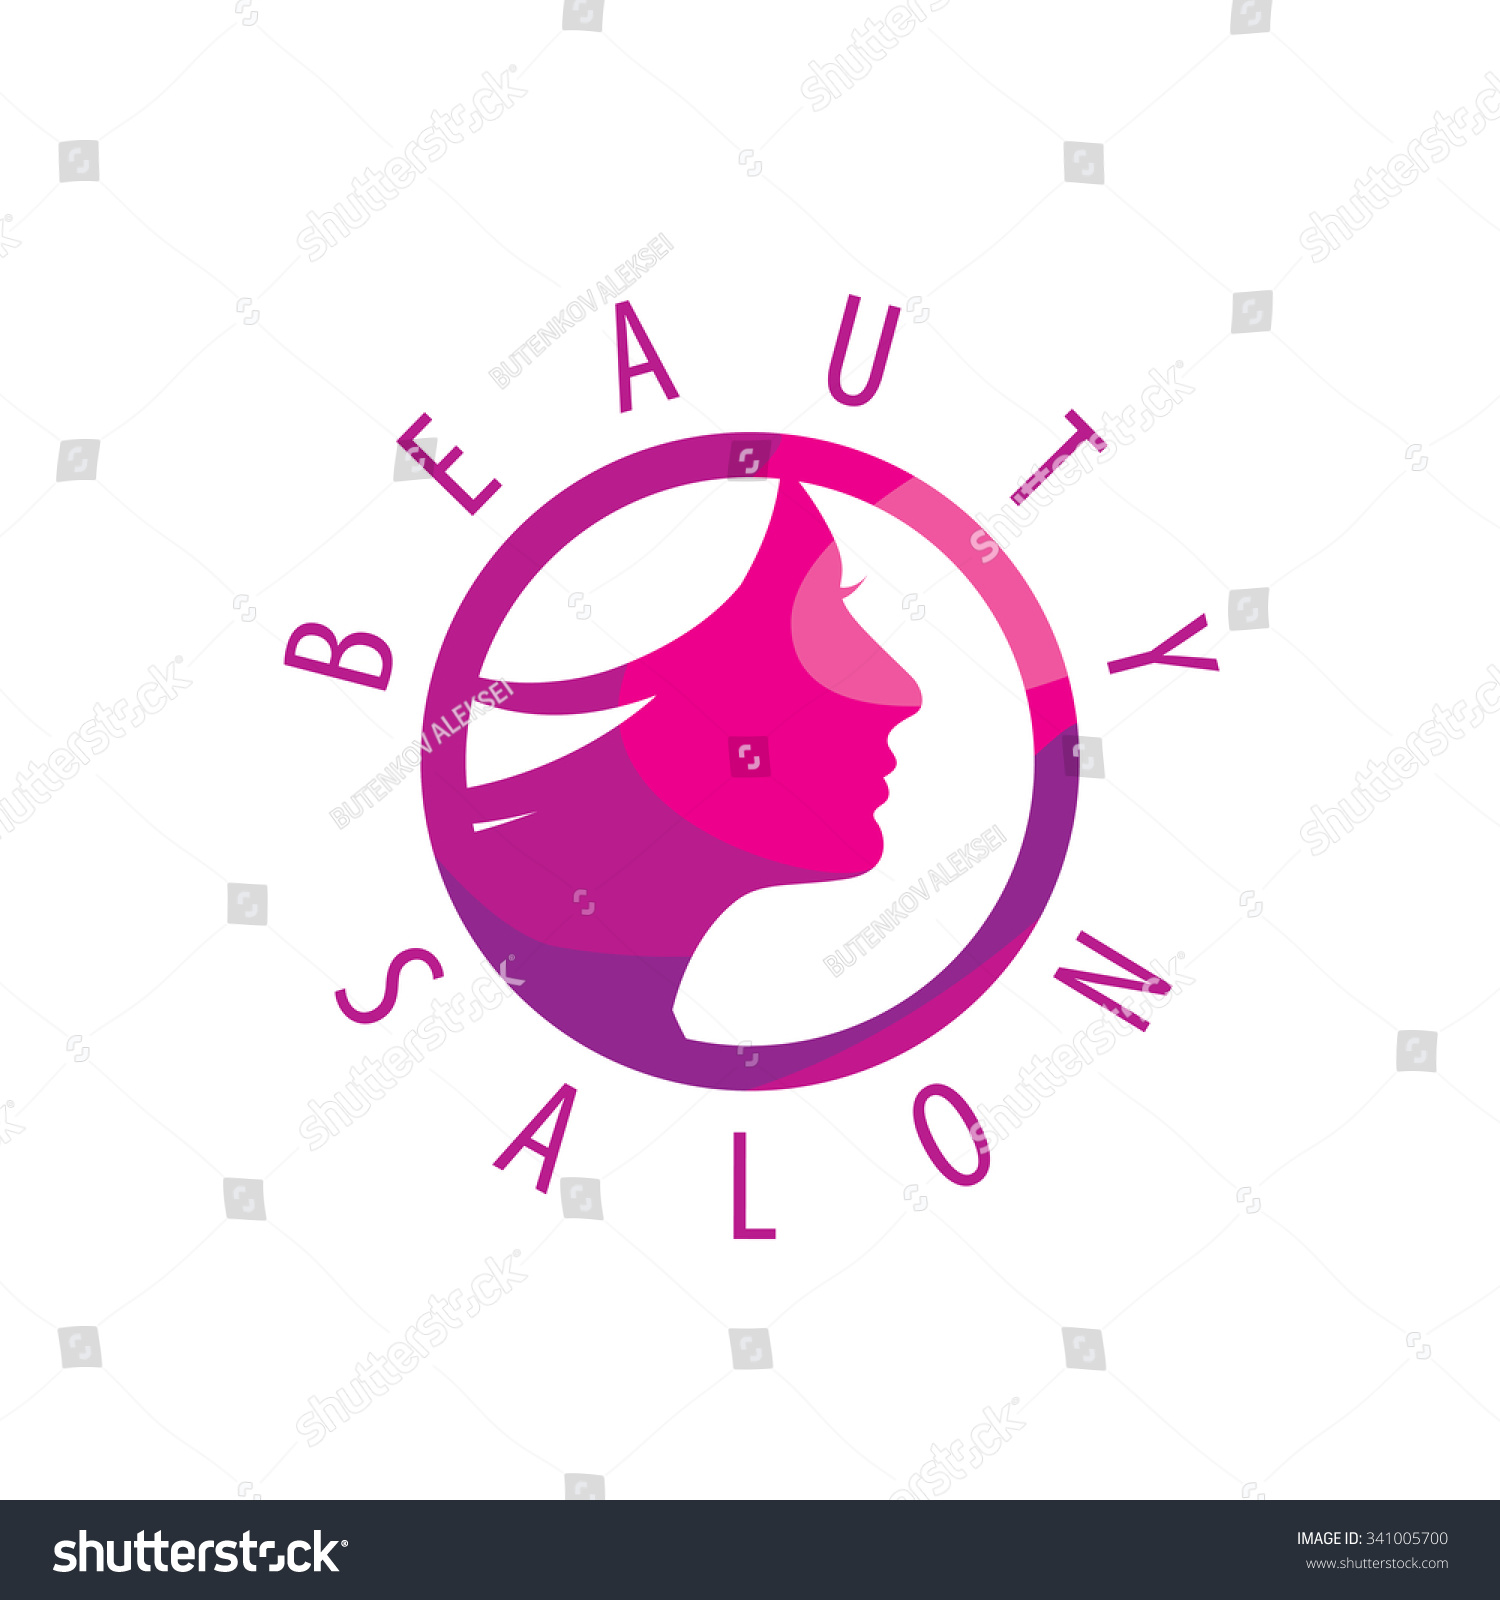 beauty female face logo designcosmetic salon logo design